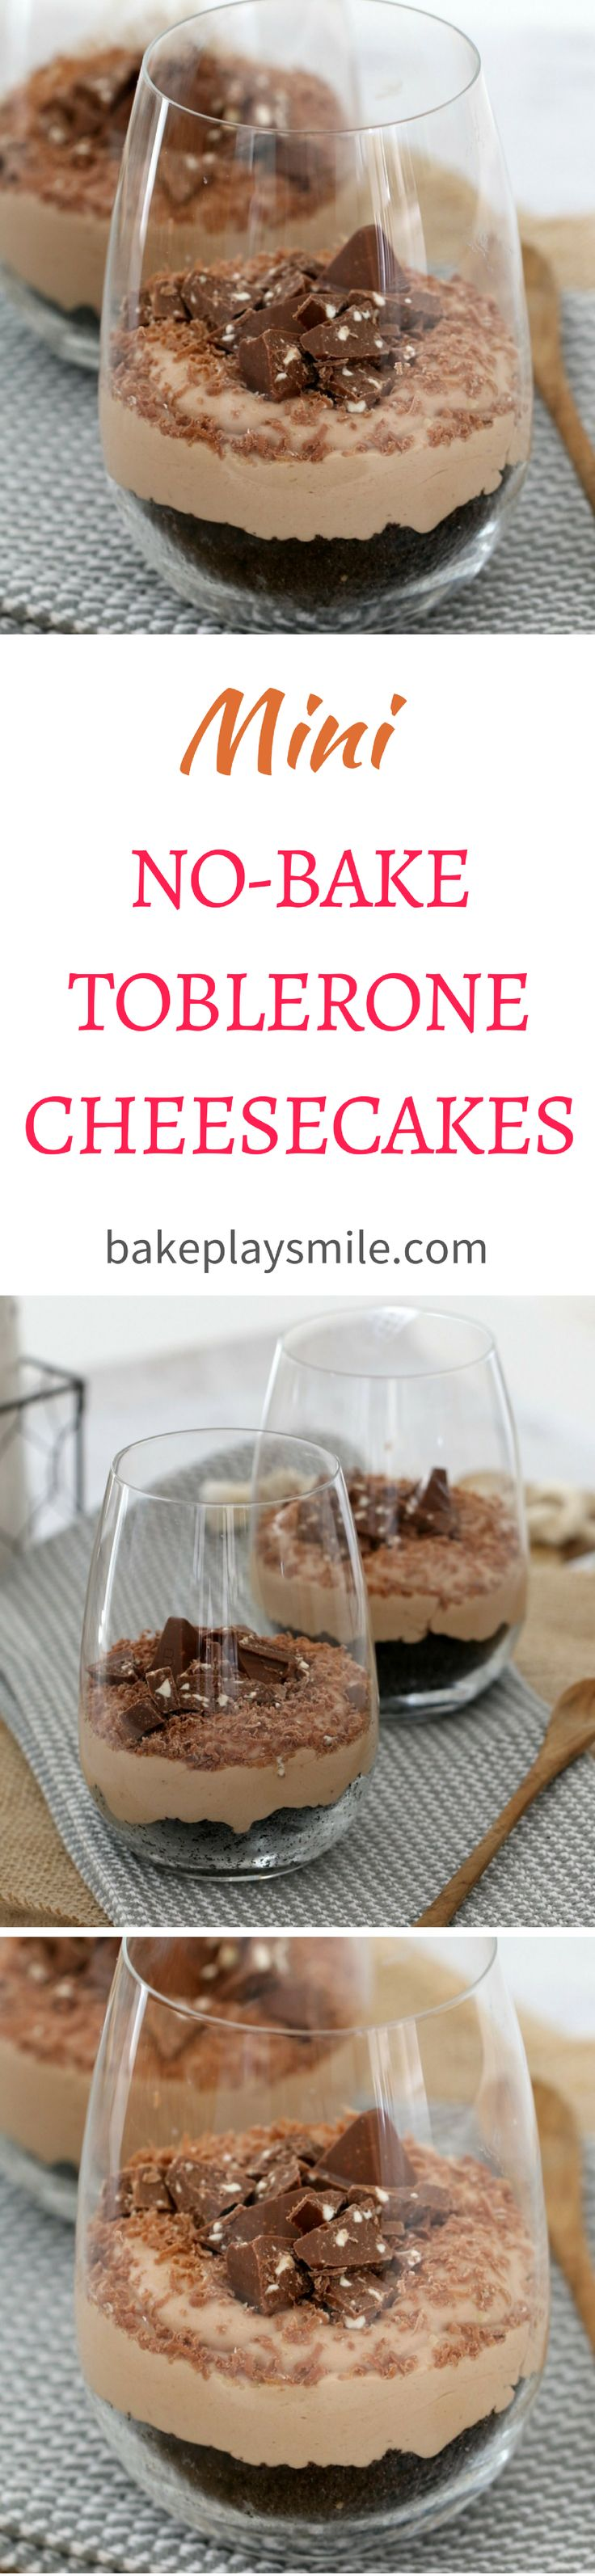 The most delicious mini no bake Thermomix Toblerone cheesecakes you'll ever eat. Super quick and easy to prepare… these individual desserts really are the BEST! #toblerone #mini #individual #cheesecakes #baking #dessert #conventional #thermomix #recipe